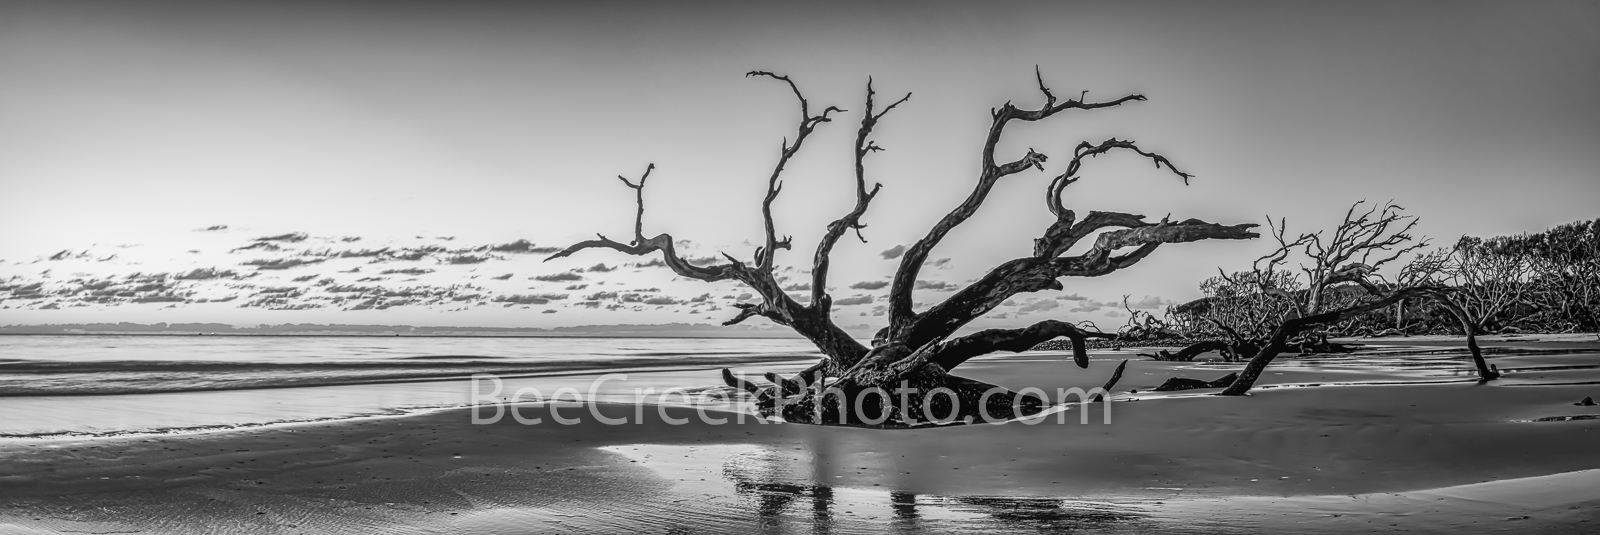 Sunrise at Driftwood Beach Pano BW - Jekyll Island driftwood beach with trees in the sand at sunrise as a black and white panorama...